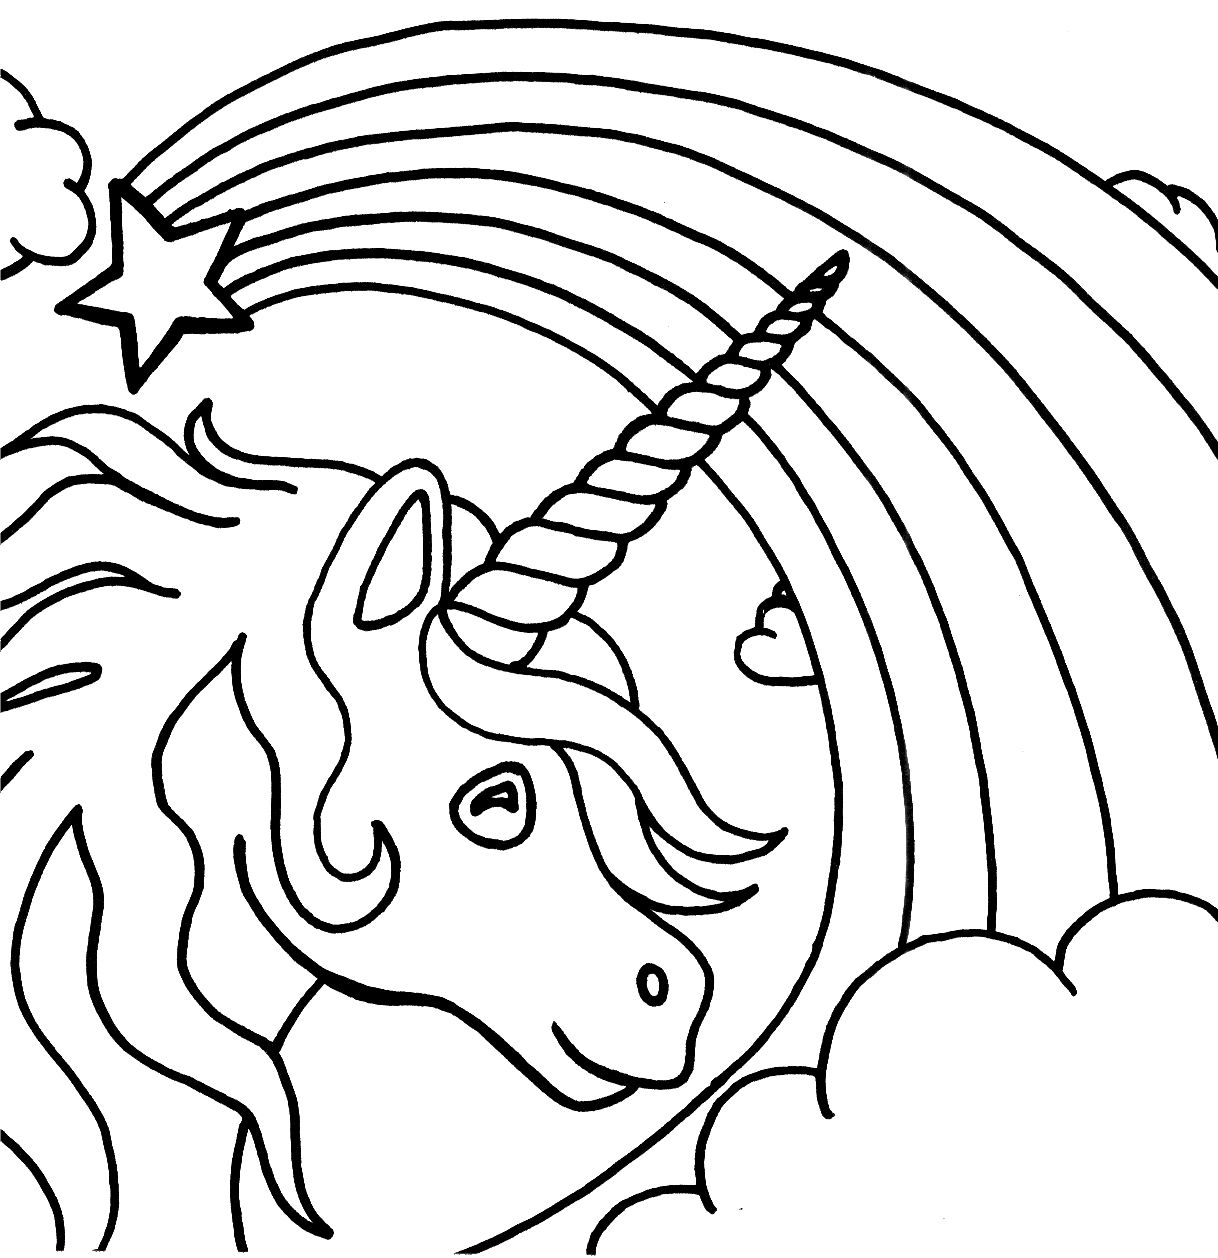 Free Printable Unicorn Coloring Pages For Kids Unicorn Coloring Pages Kids Printable Coloring Pages Coloring Pictures For Kids